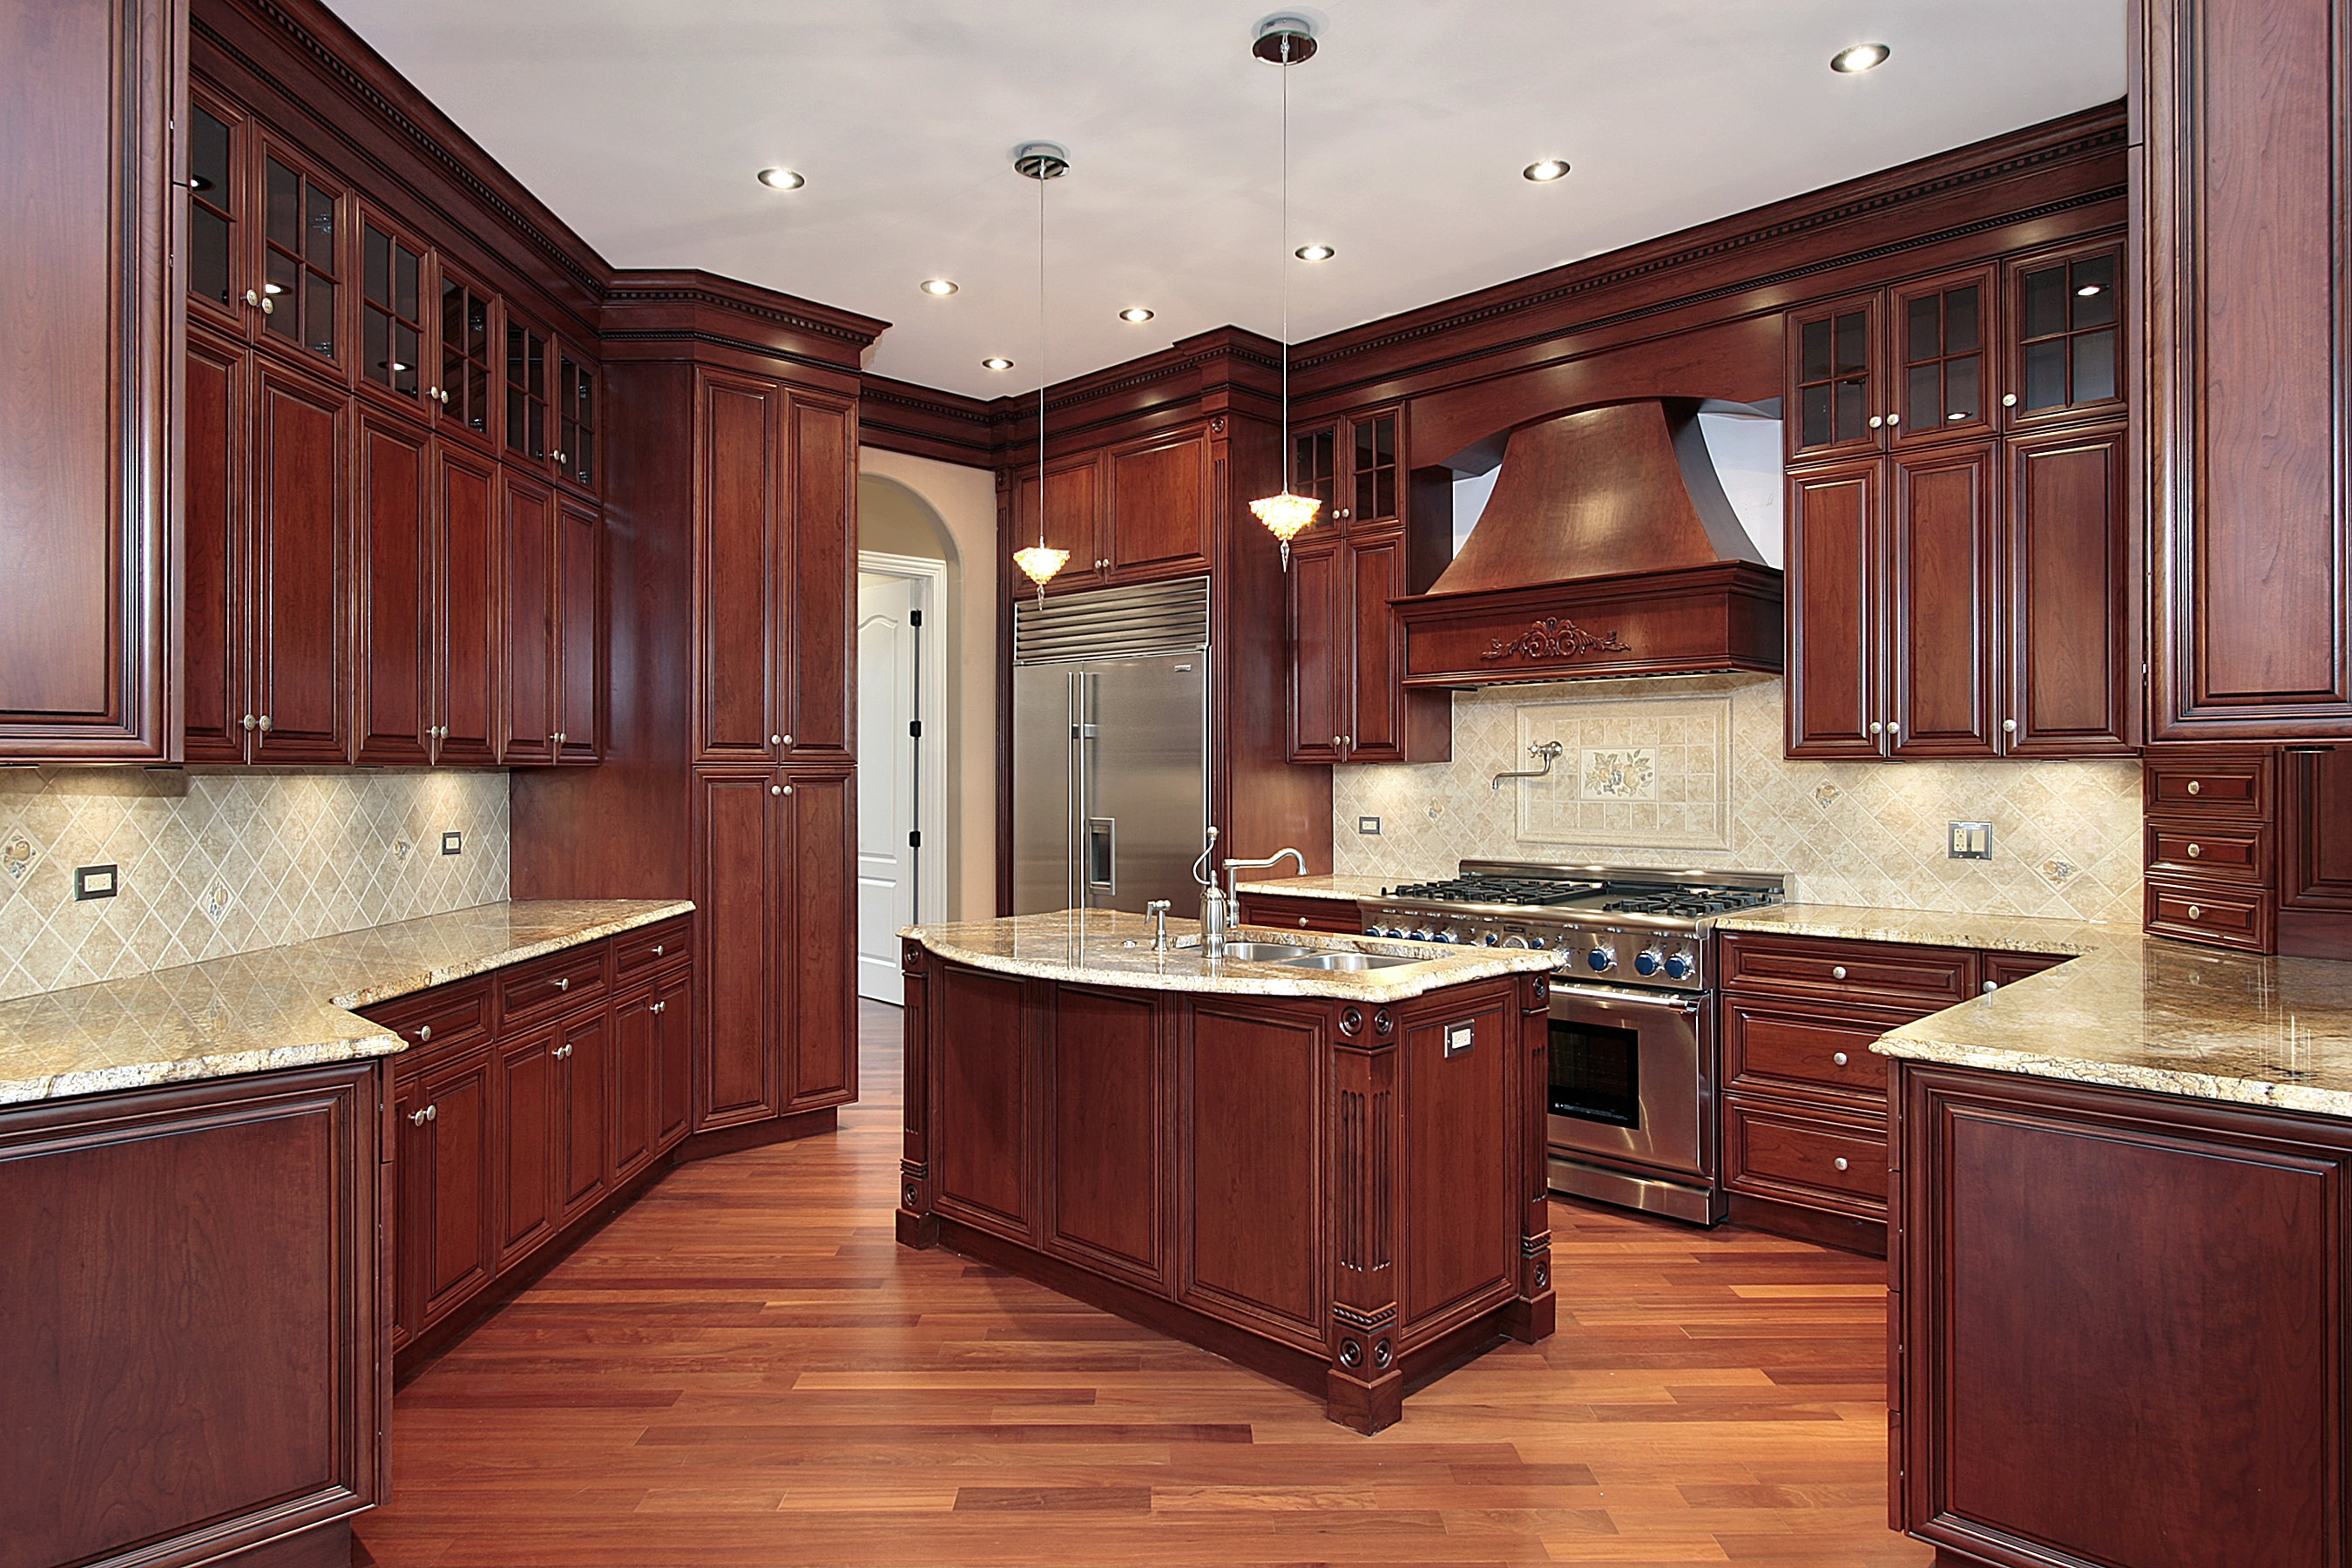 Selecting Wood For Kitchen Cabinets2700 X 1800